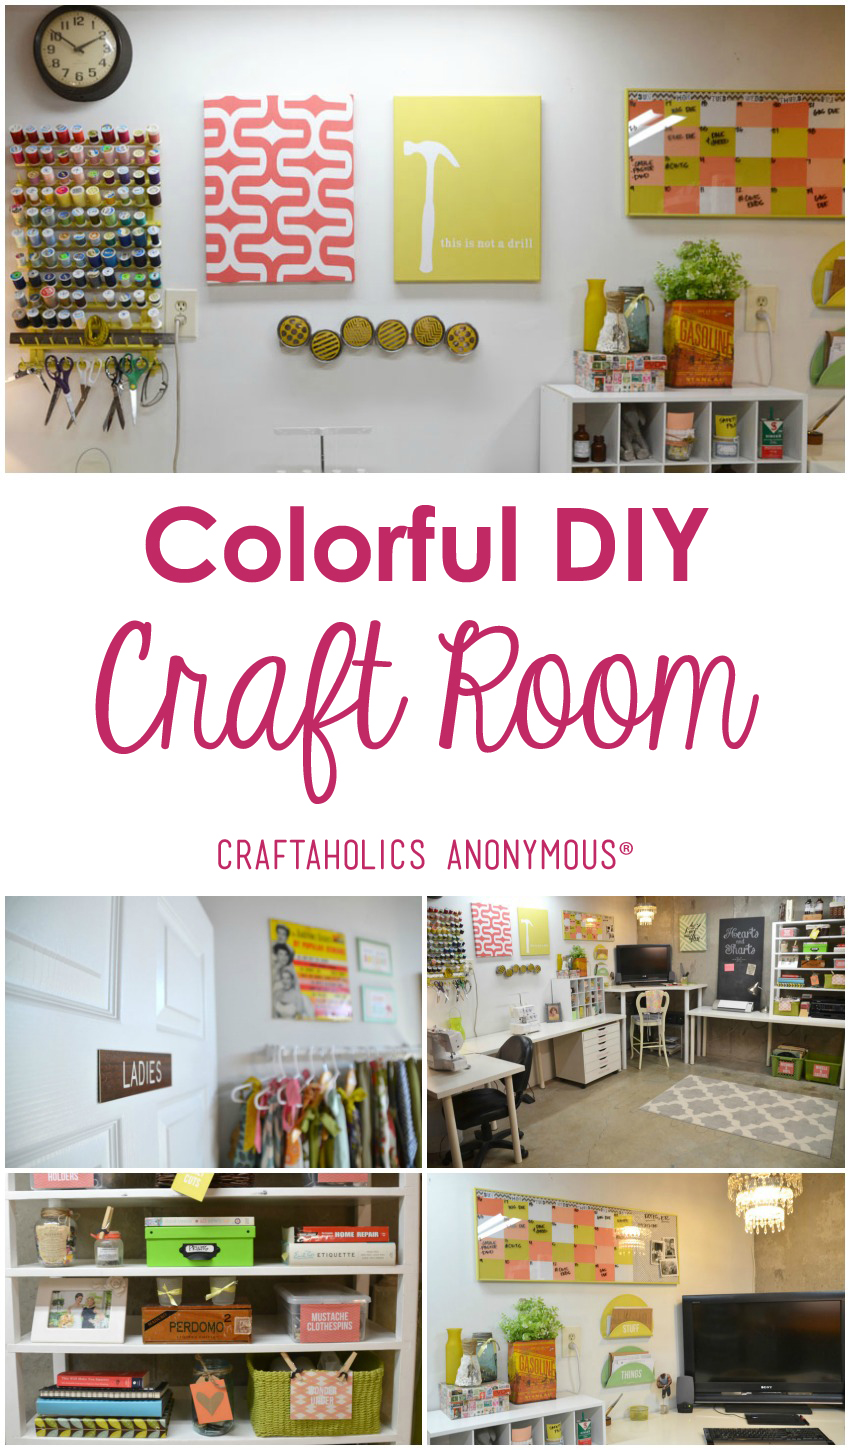 Craft Room Tour / Check out this colorful and fun craft room that Dena of Hearts and Sharts DIY'd completely from scratch!